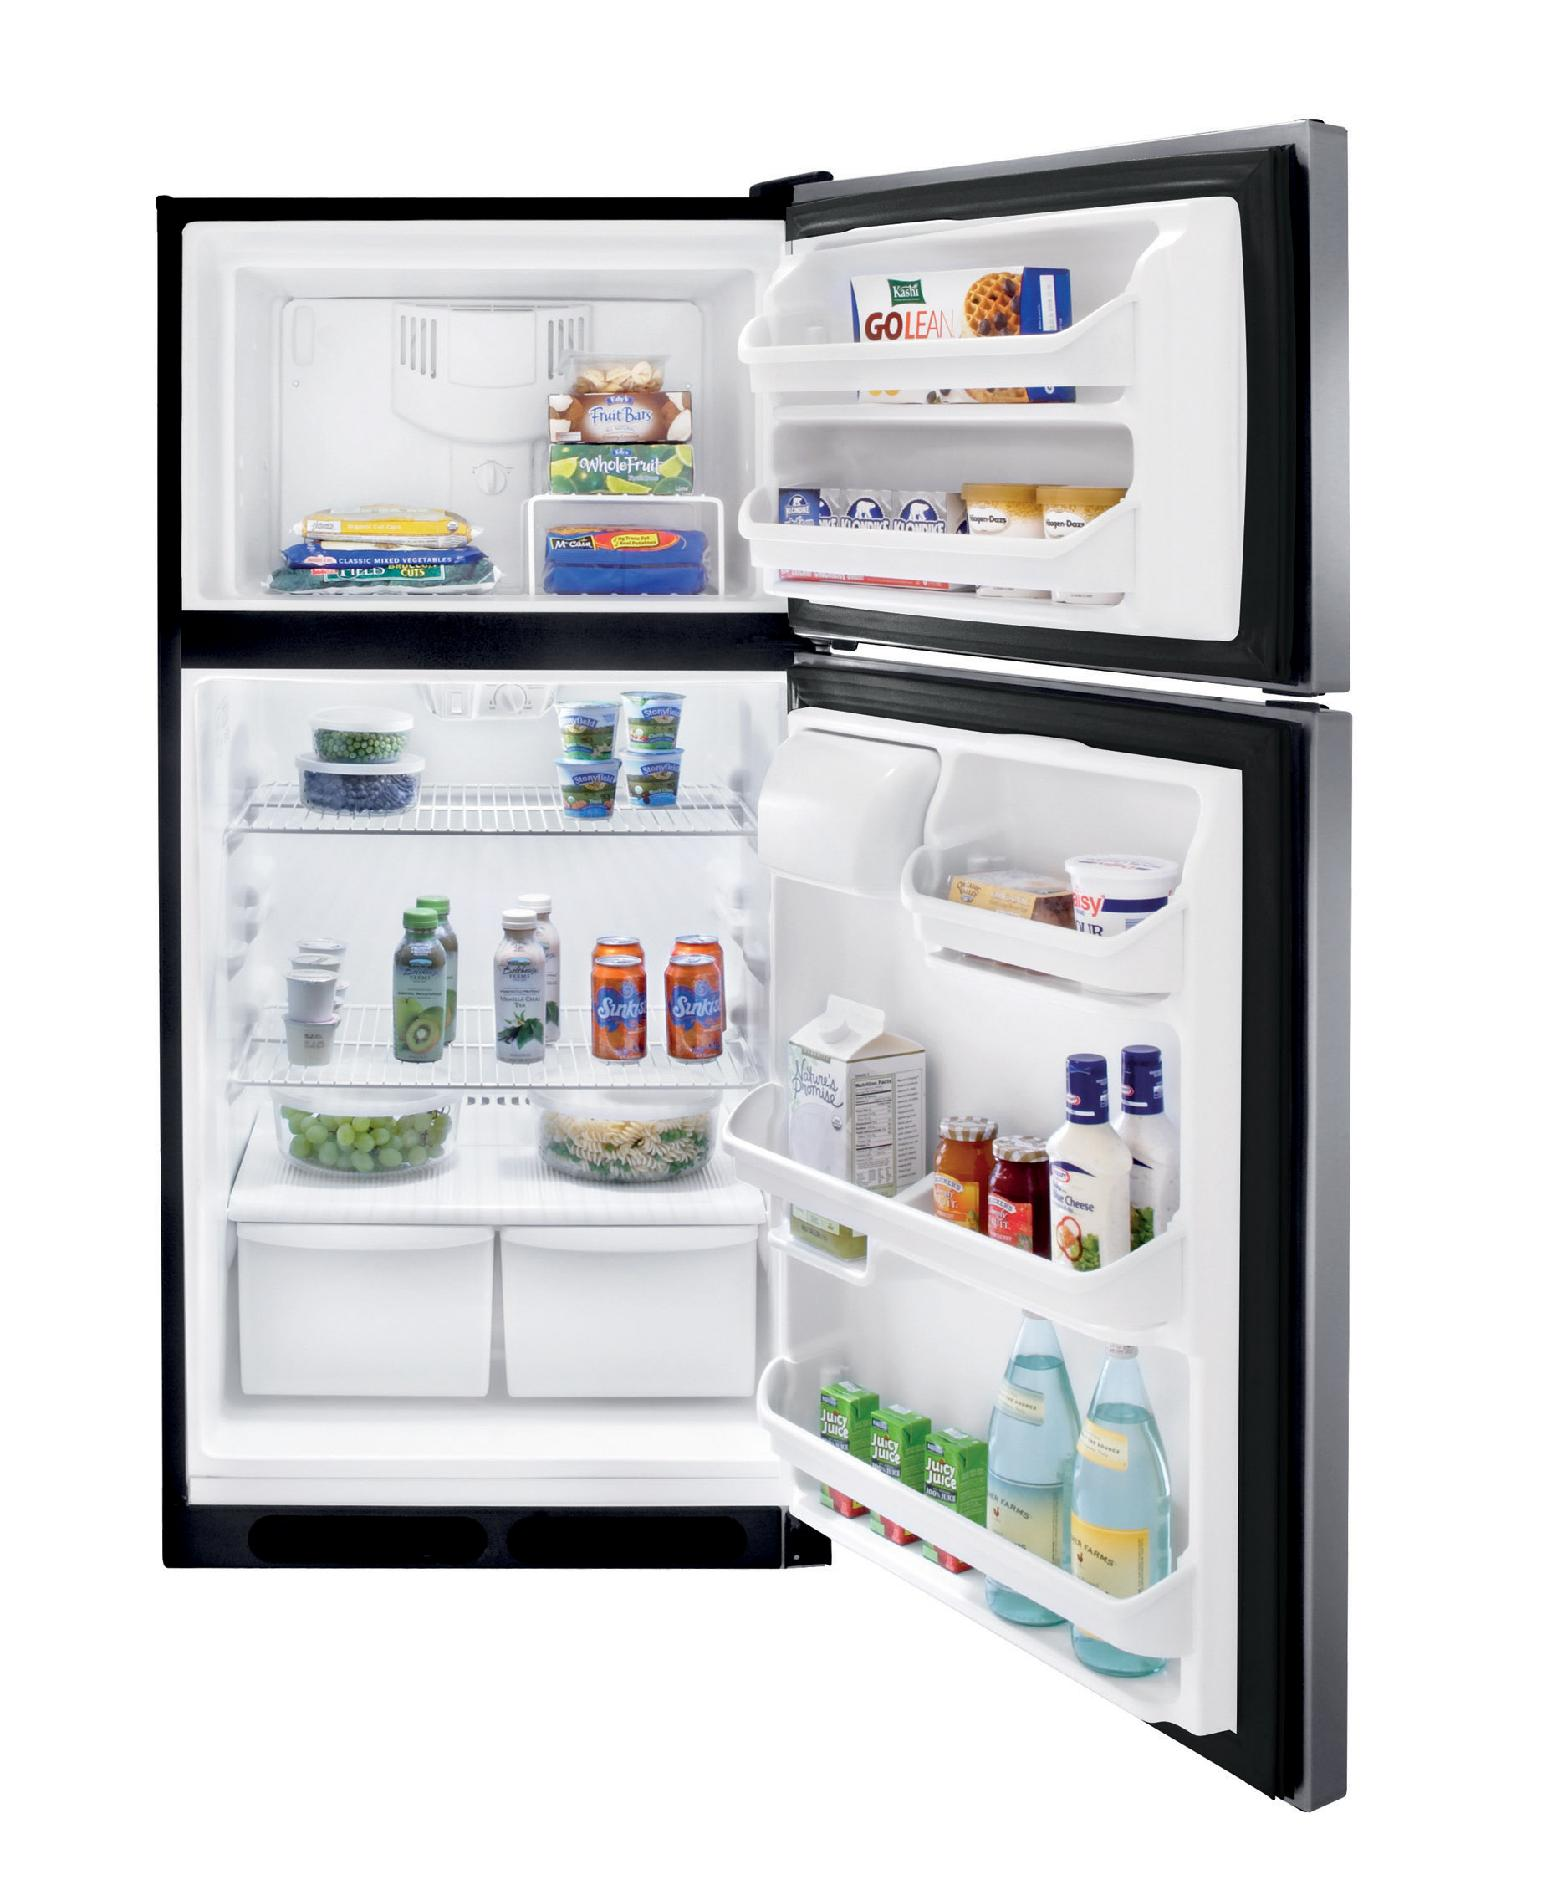 Frigidaire 14.8 cu. ft. Top-Freezer Refrigerator - Stainless Steel